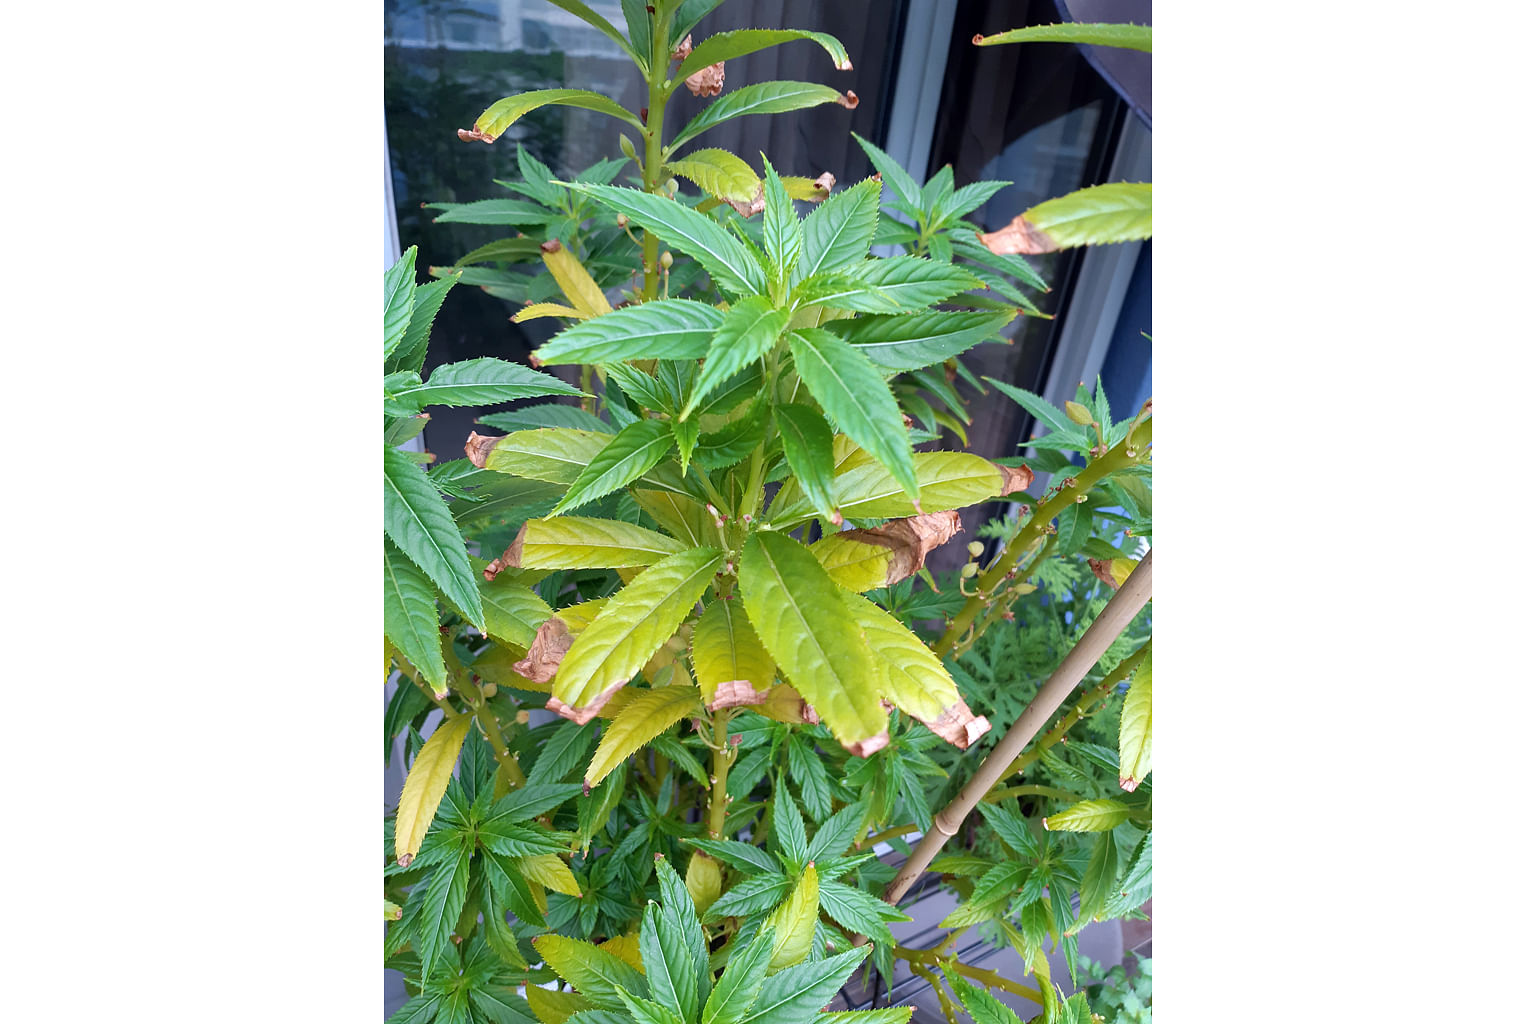 Root Awakening Stressed Balsam Plant May Be Lacking Nutrients And